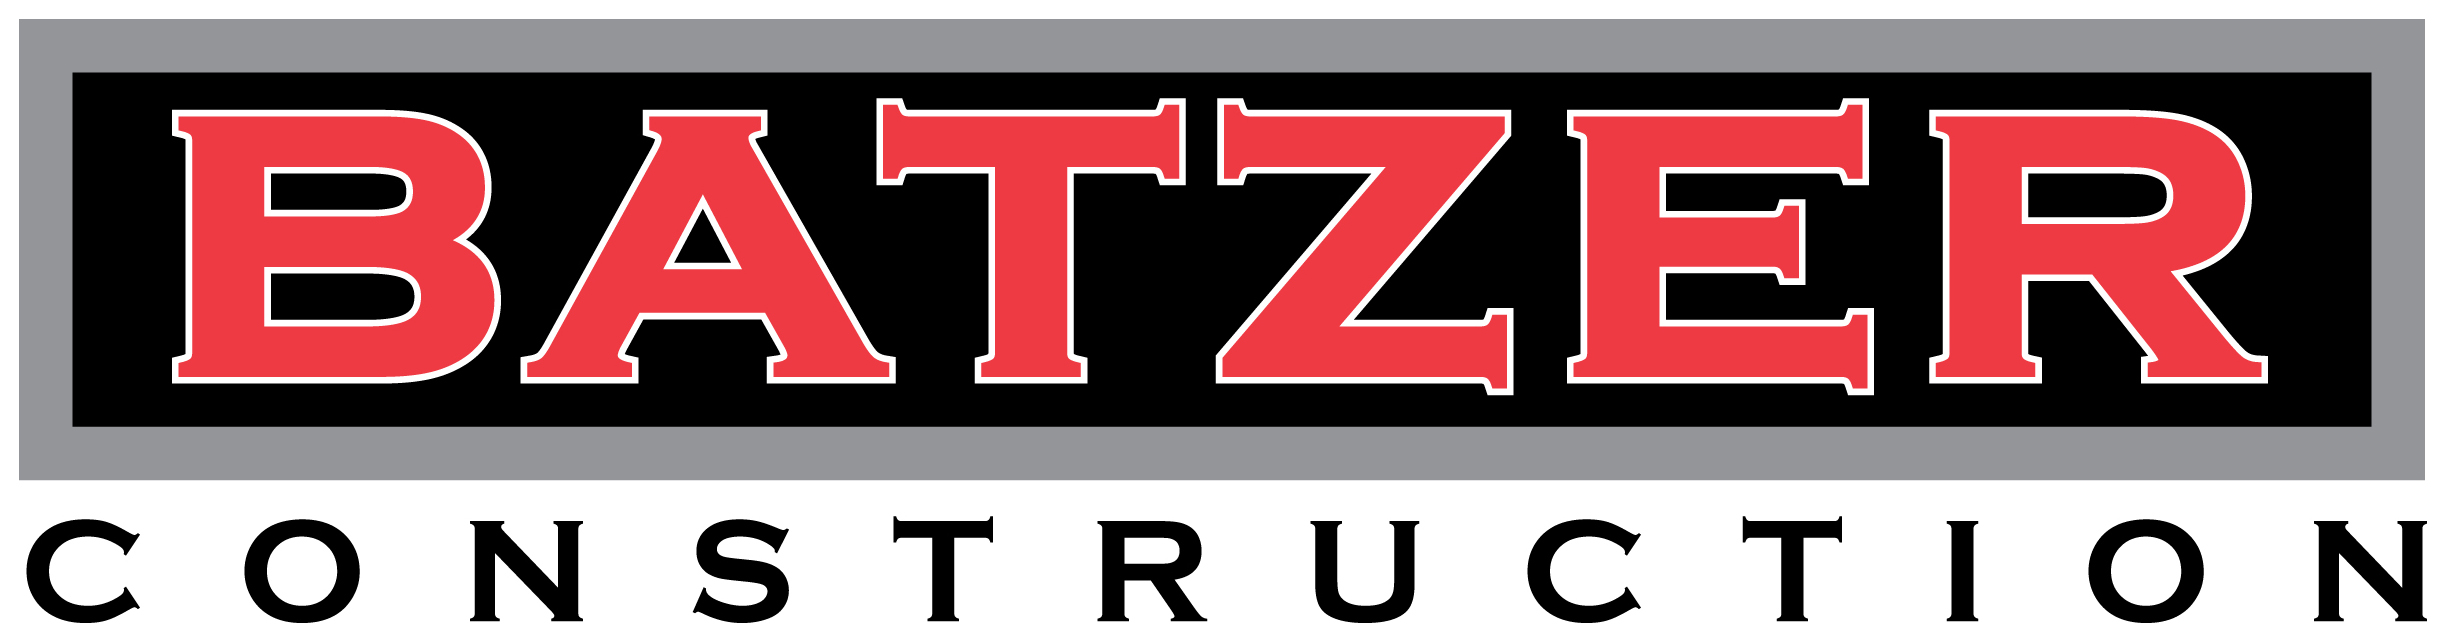 Batzer Construction-logo